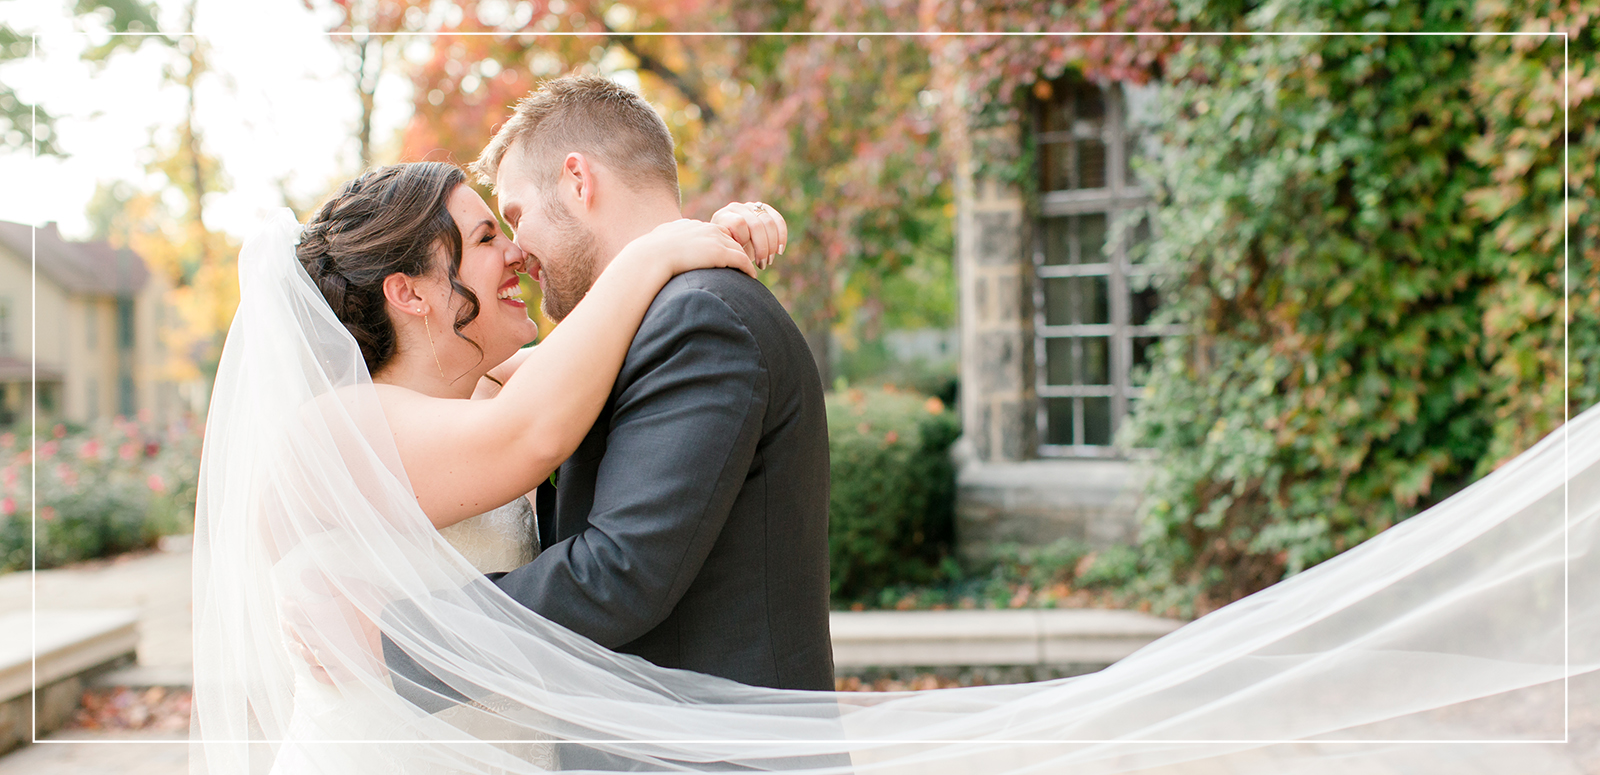 Wedding Photographer Pittsburgh, Pittsburgh Wedding Photographer, Westminster Chapel Wedding,